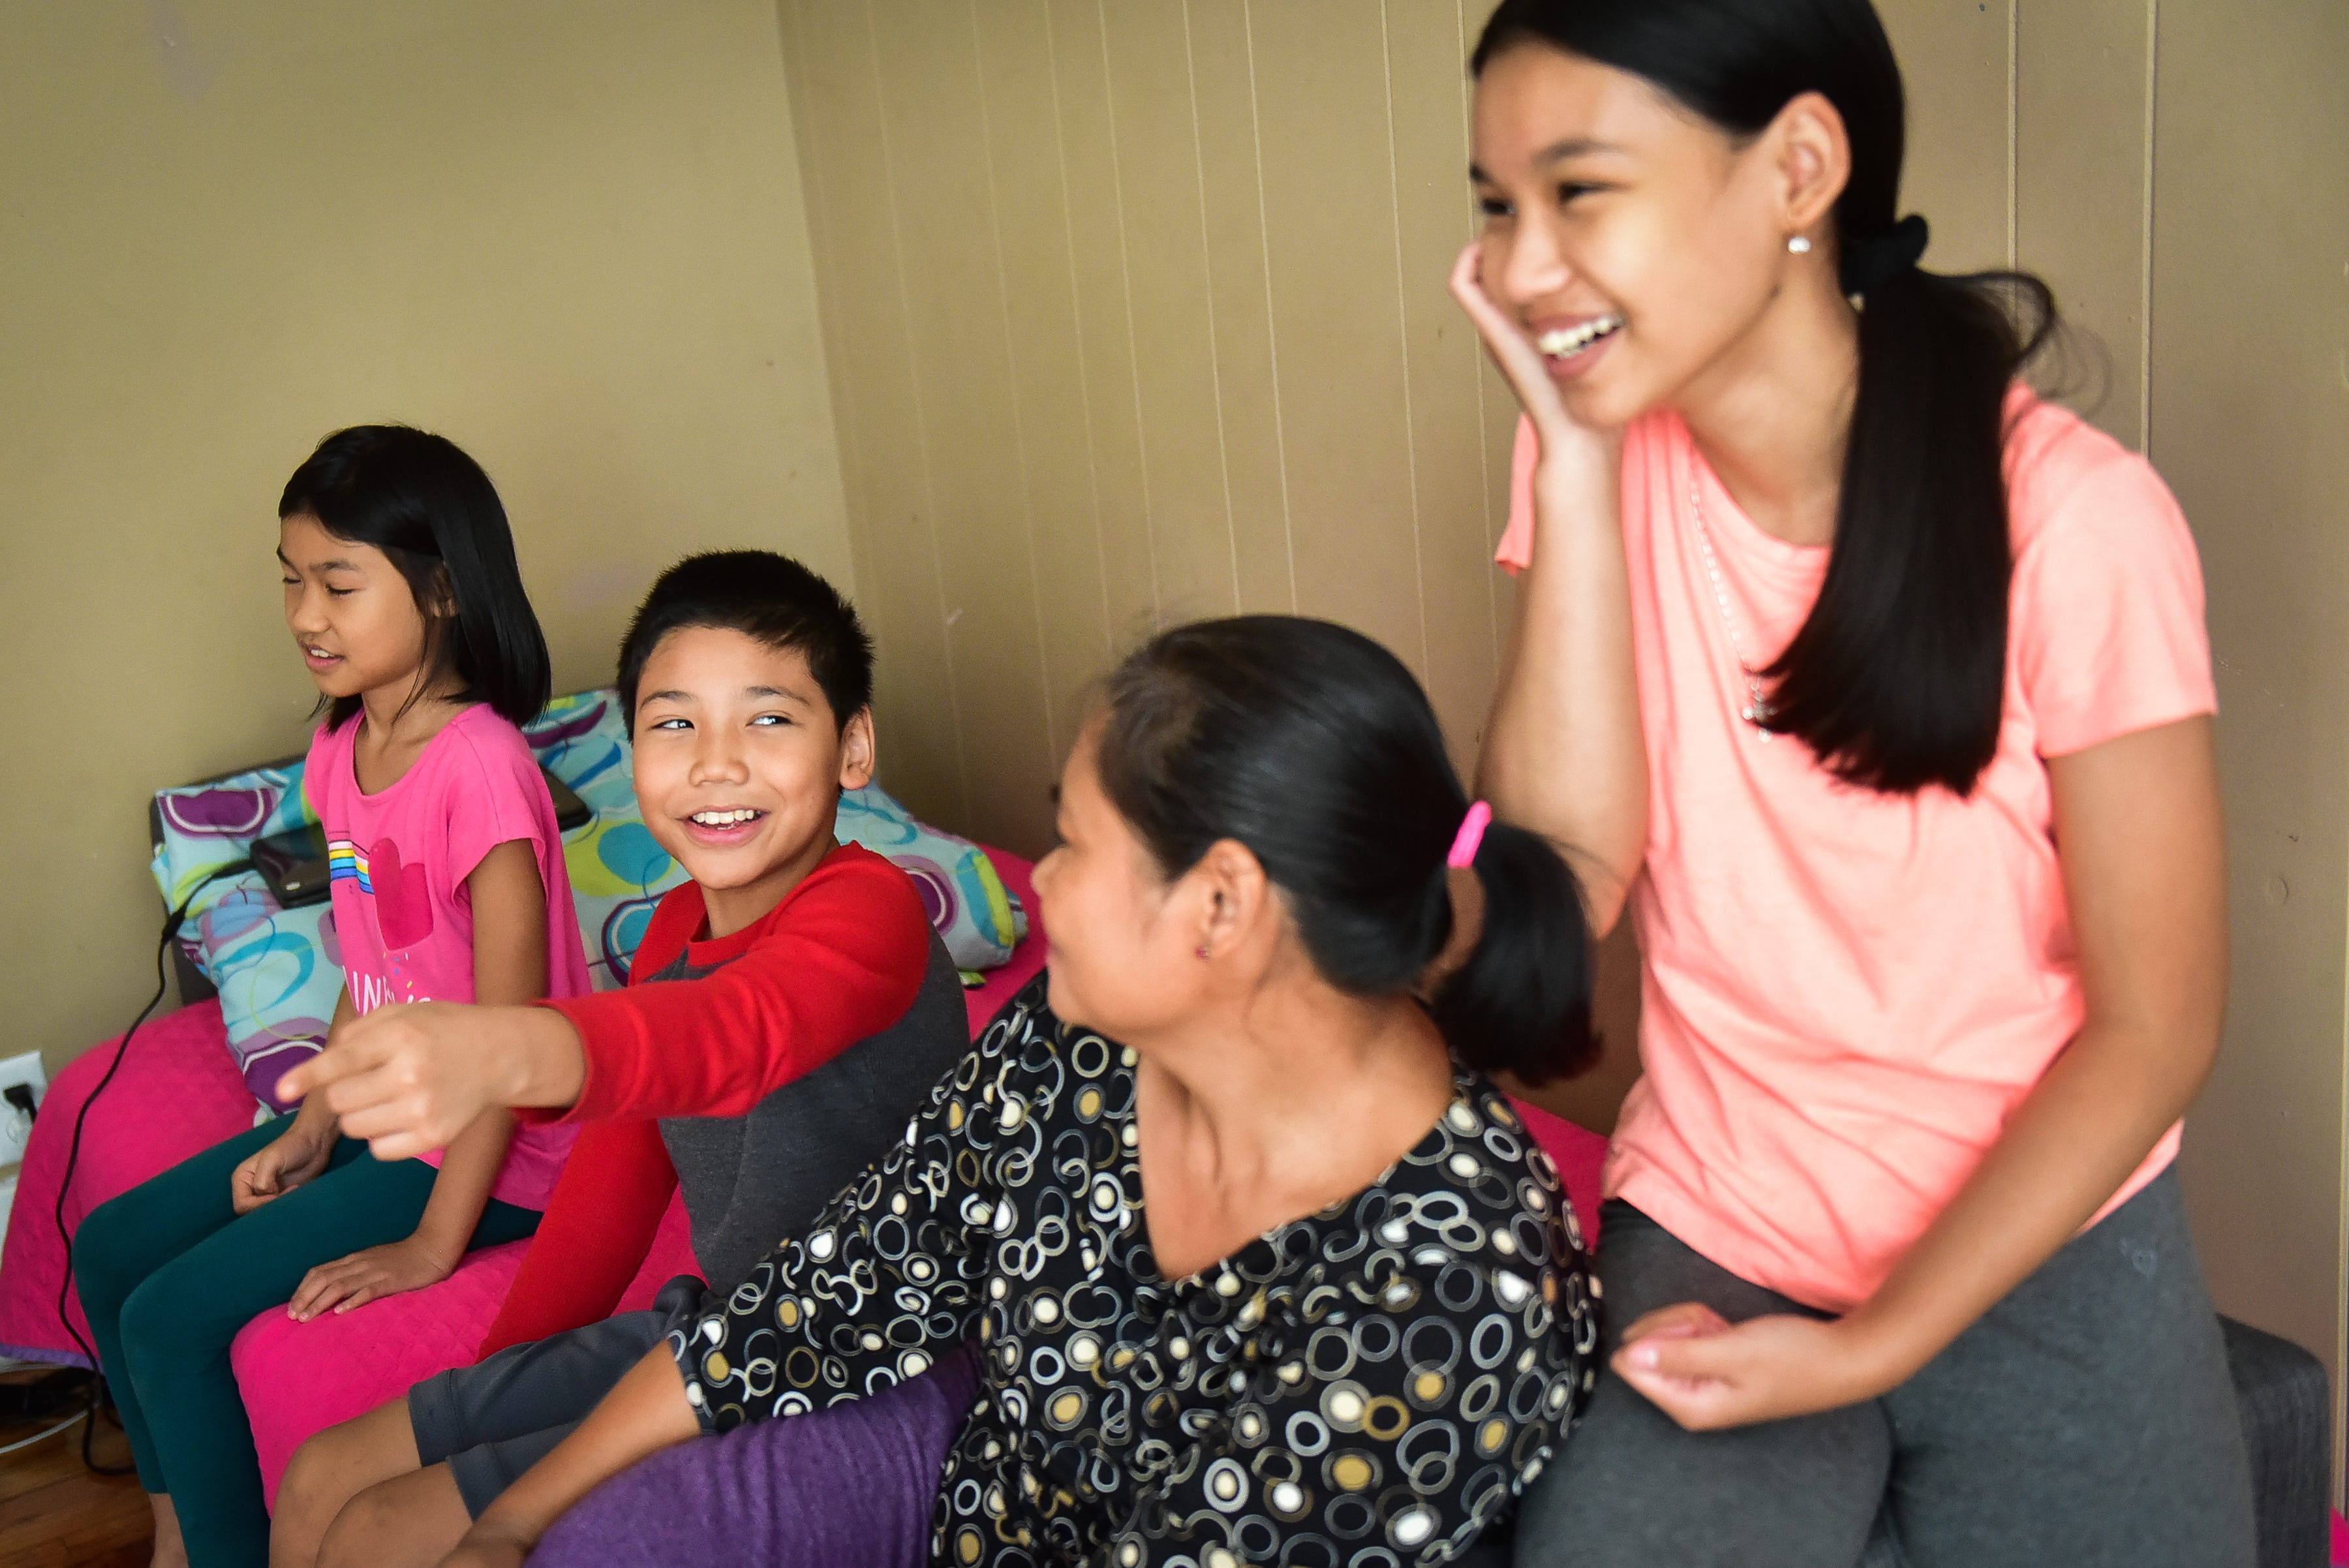 Saw Kler Kaw Htoo, left center, points to one of his sisters and laughs while talking about what it's like to attend classes from home on Thursday, Sept. 24, 2020, in Utica.